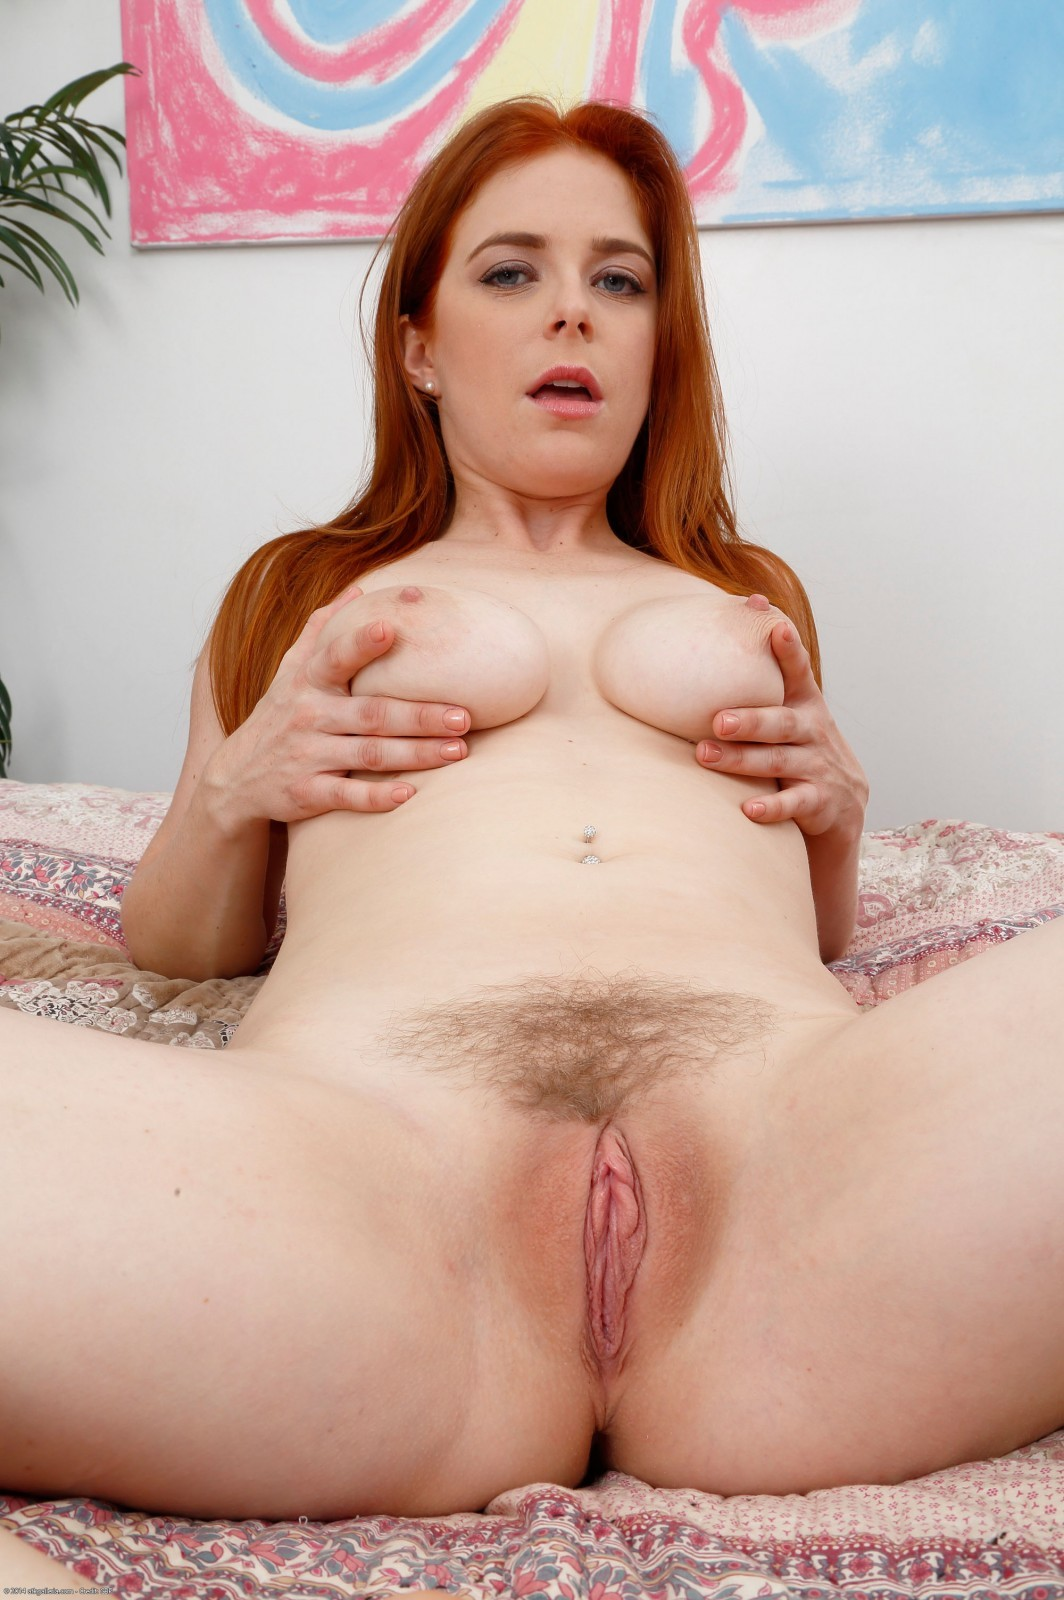 Ex life guard penny pax bares her stocking clad feet amp more 3